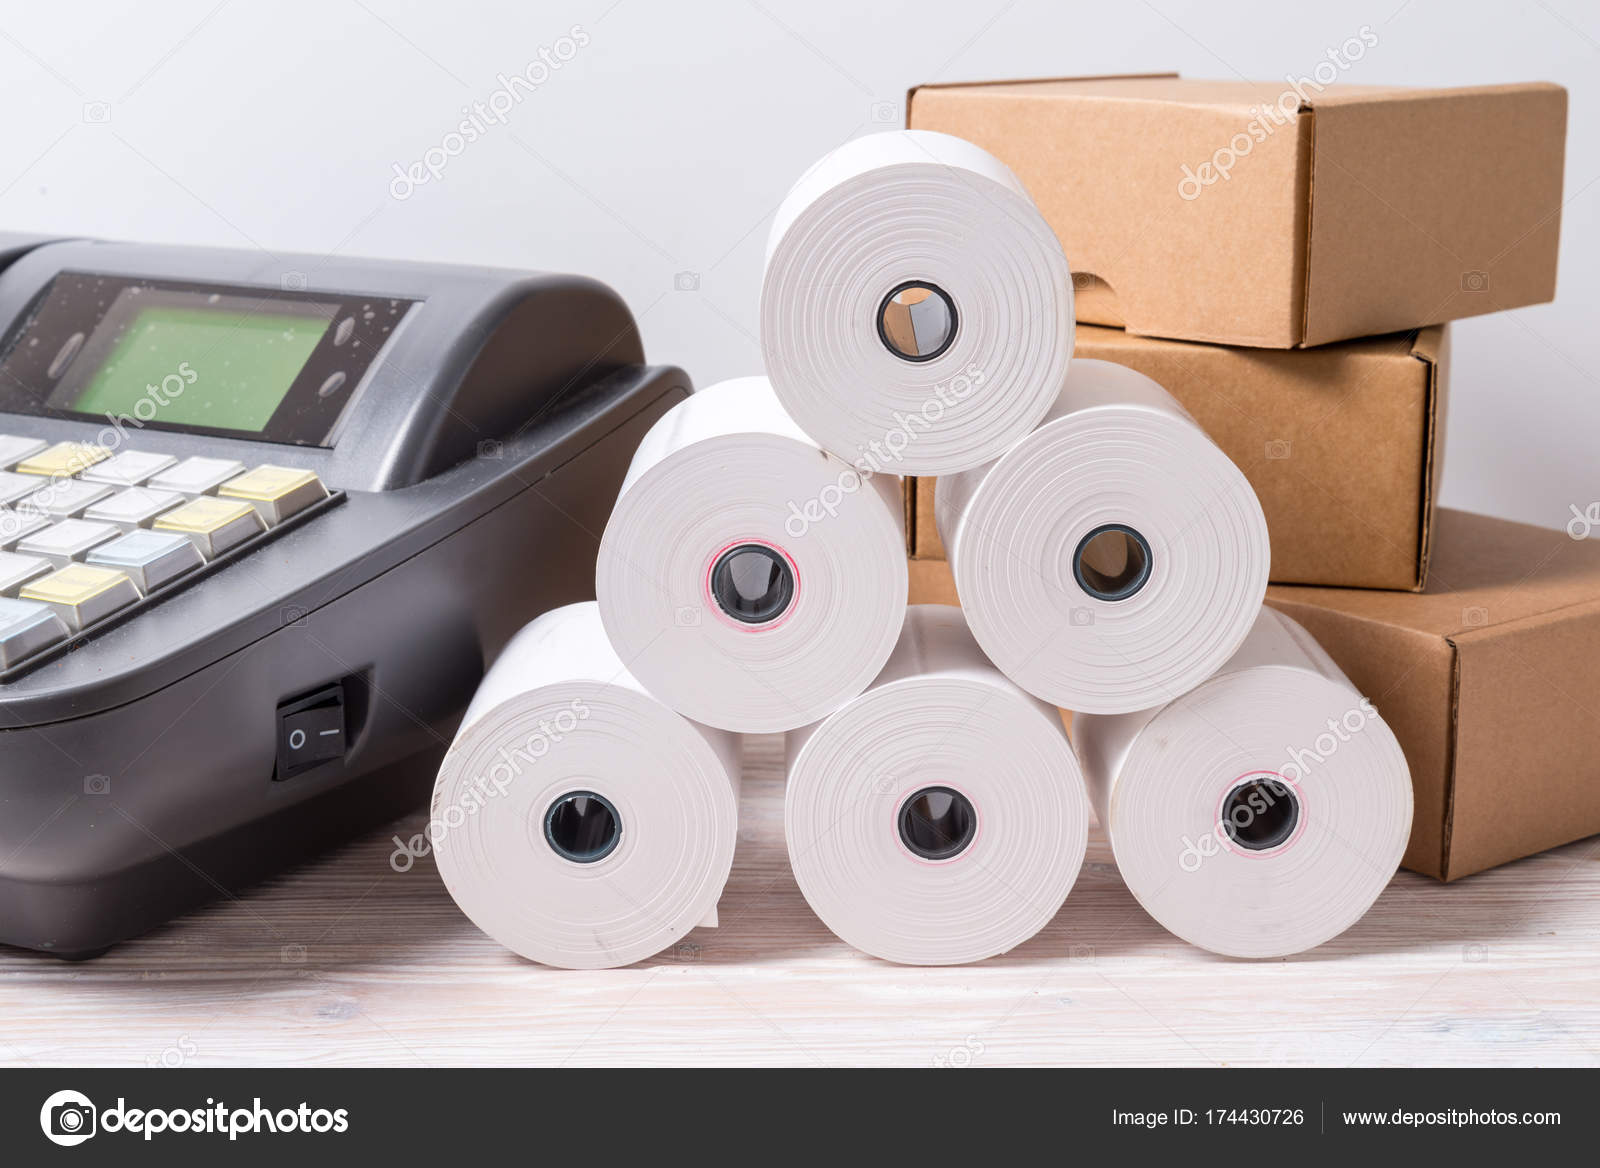 Electronic Cash Register and lot of paper roll — Stock Photo